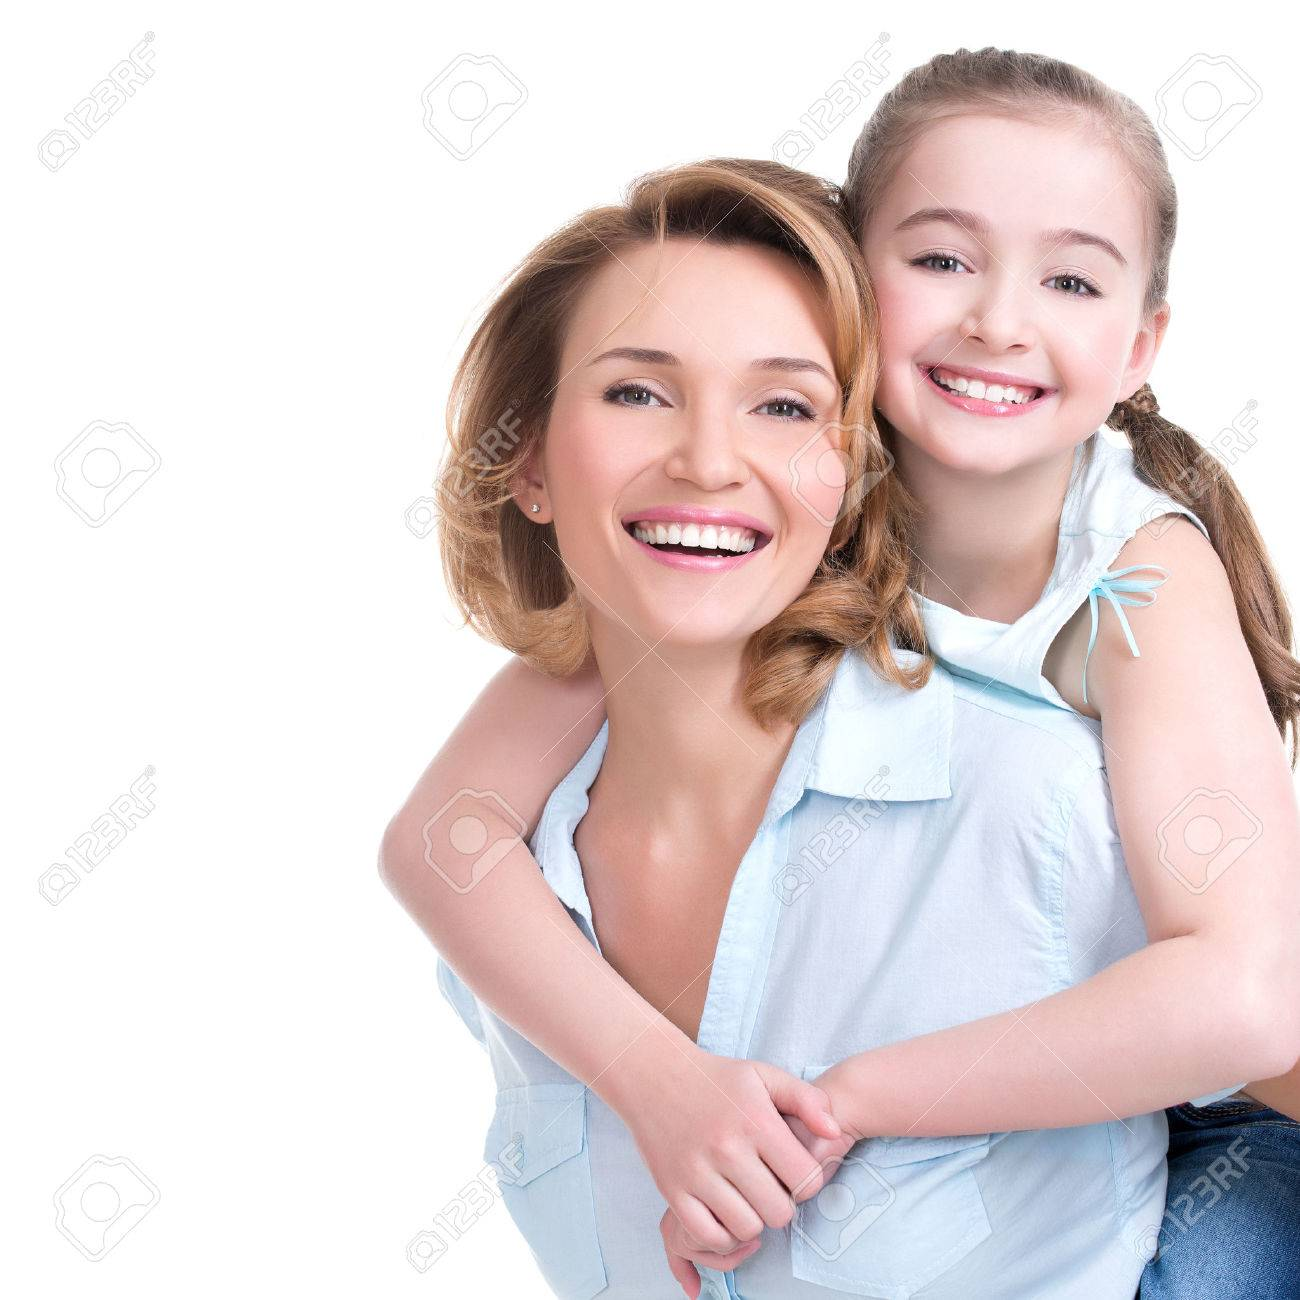 CLoseup portrait of happy  white mother and young daughter - isolated. Happy family people concept. Banque d'images - 54101540